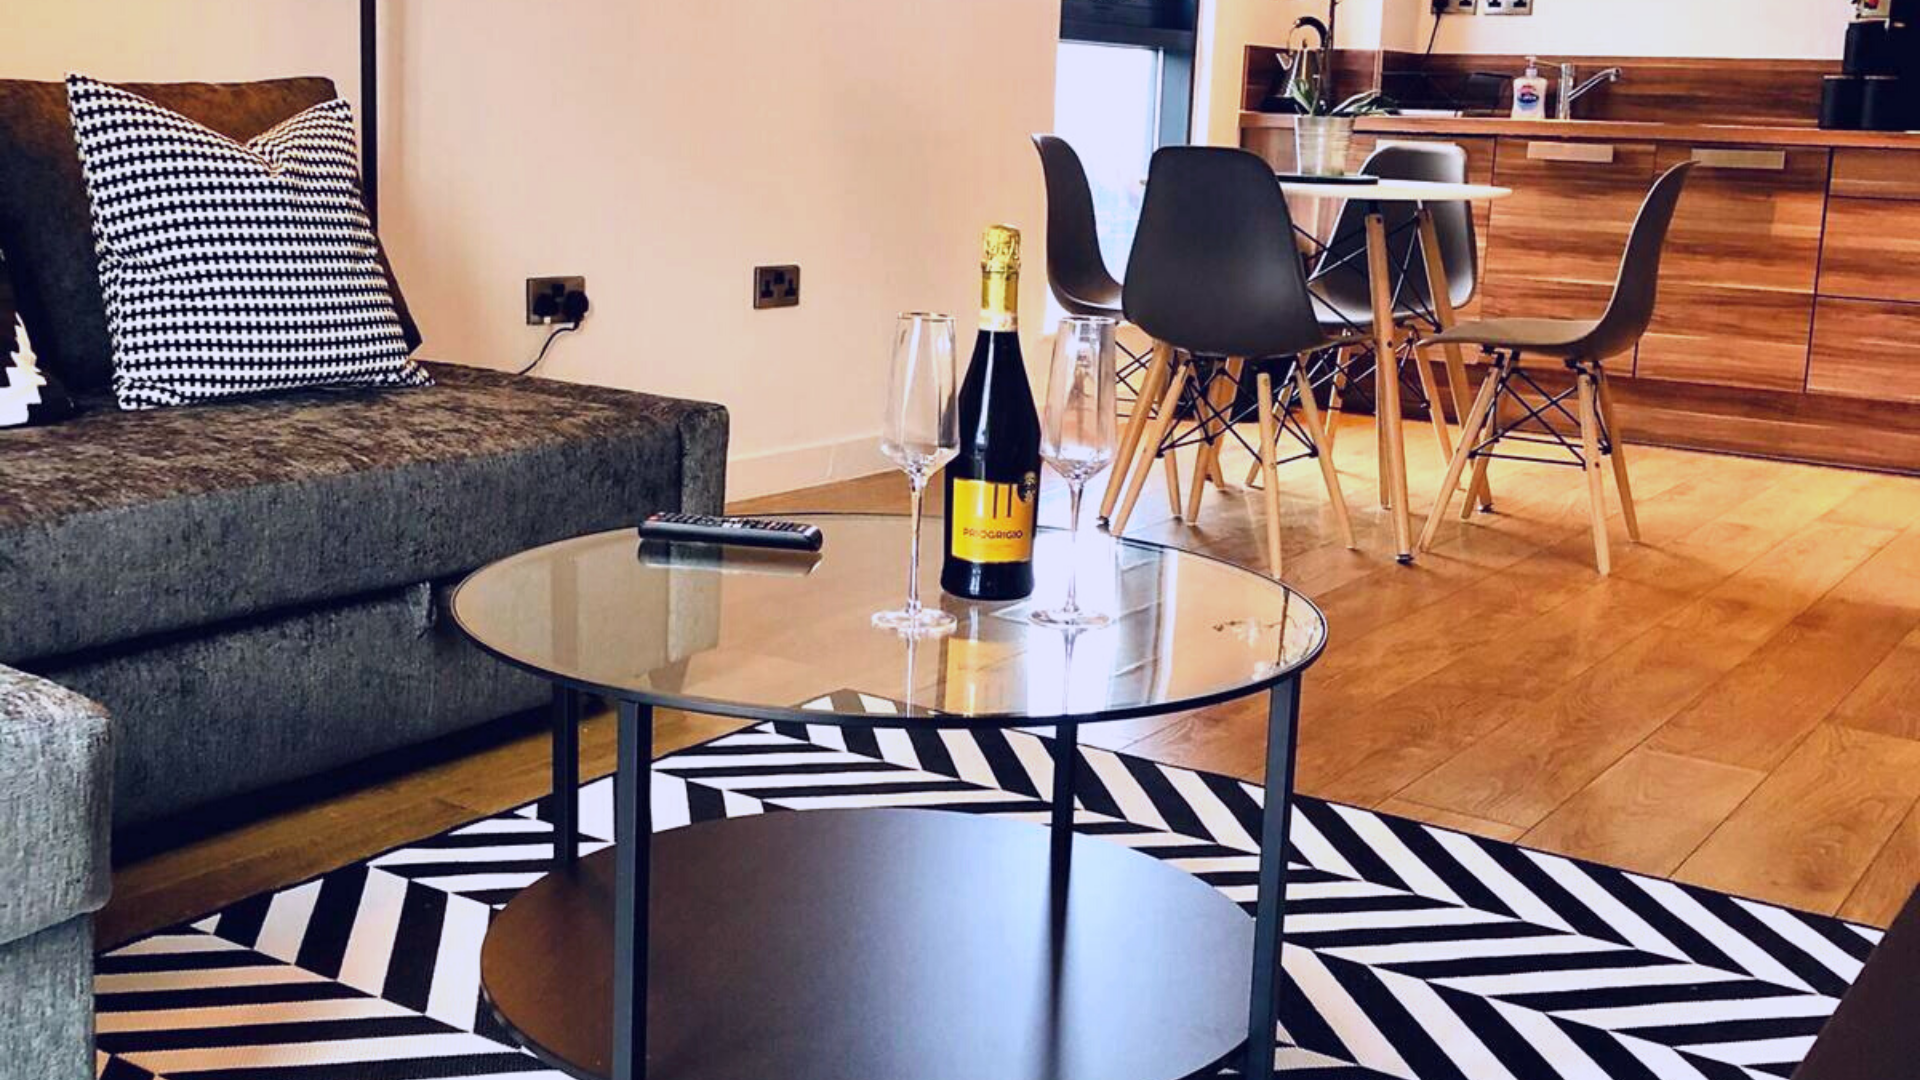 Table at Quarter Blonk Street Apartments, Centre, Sheffield - Citybase Apartments